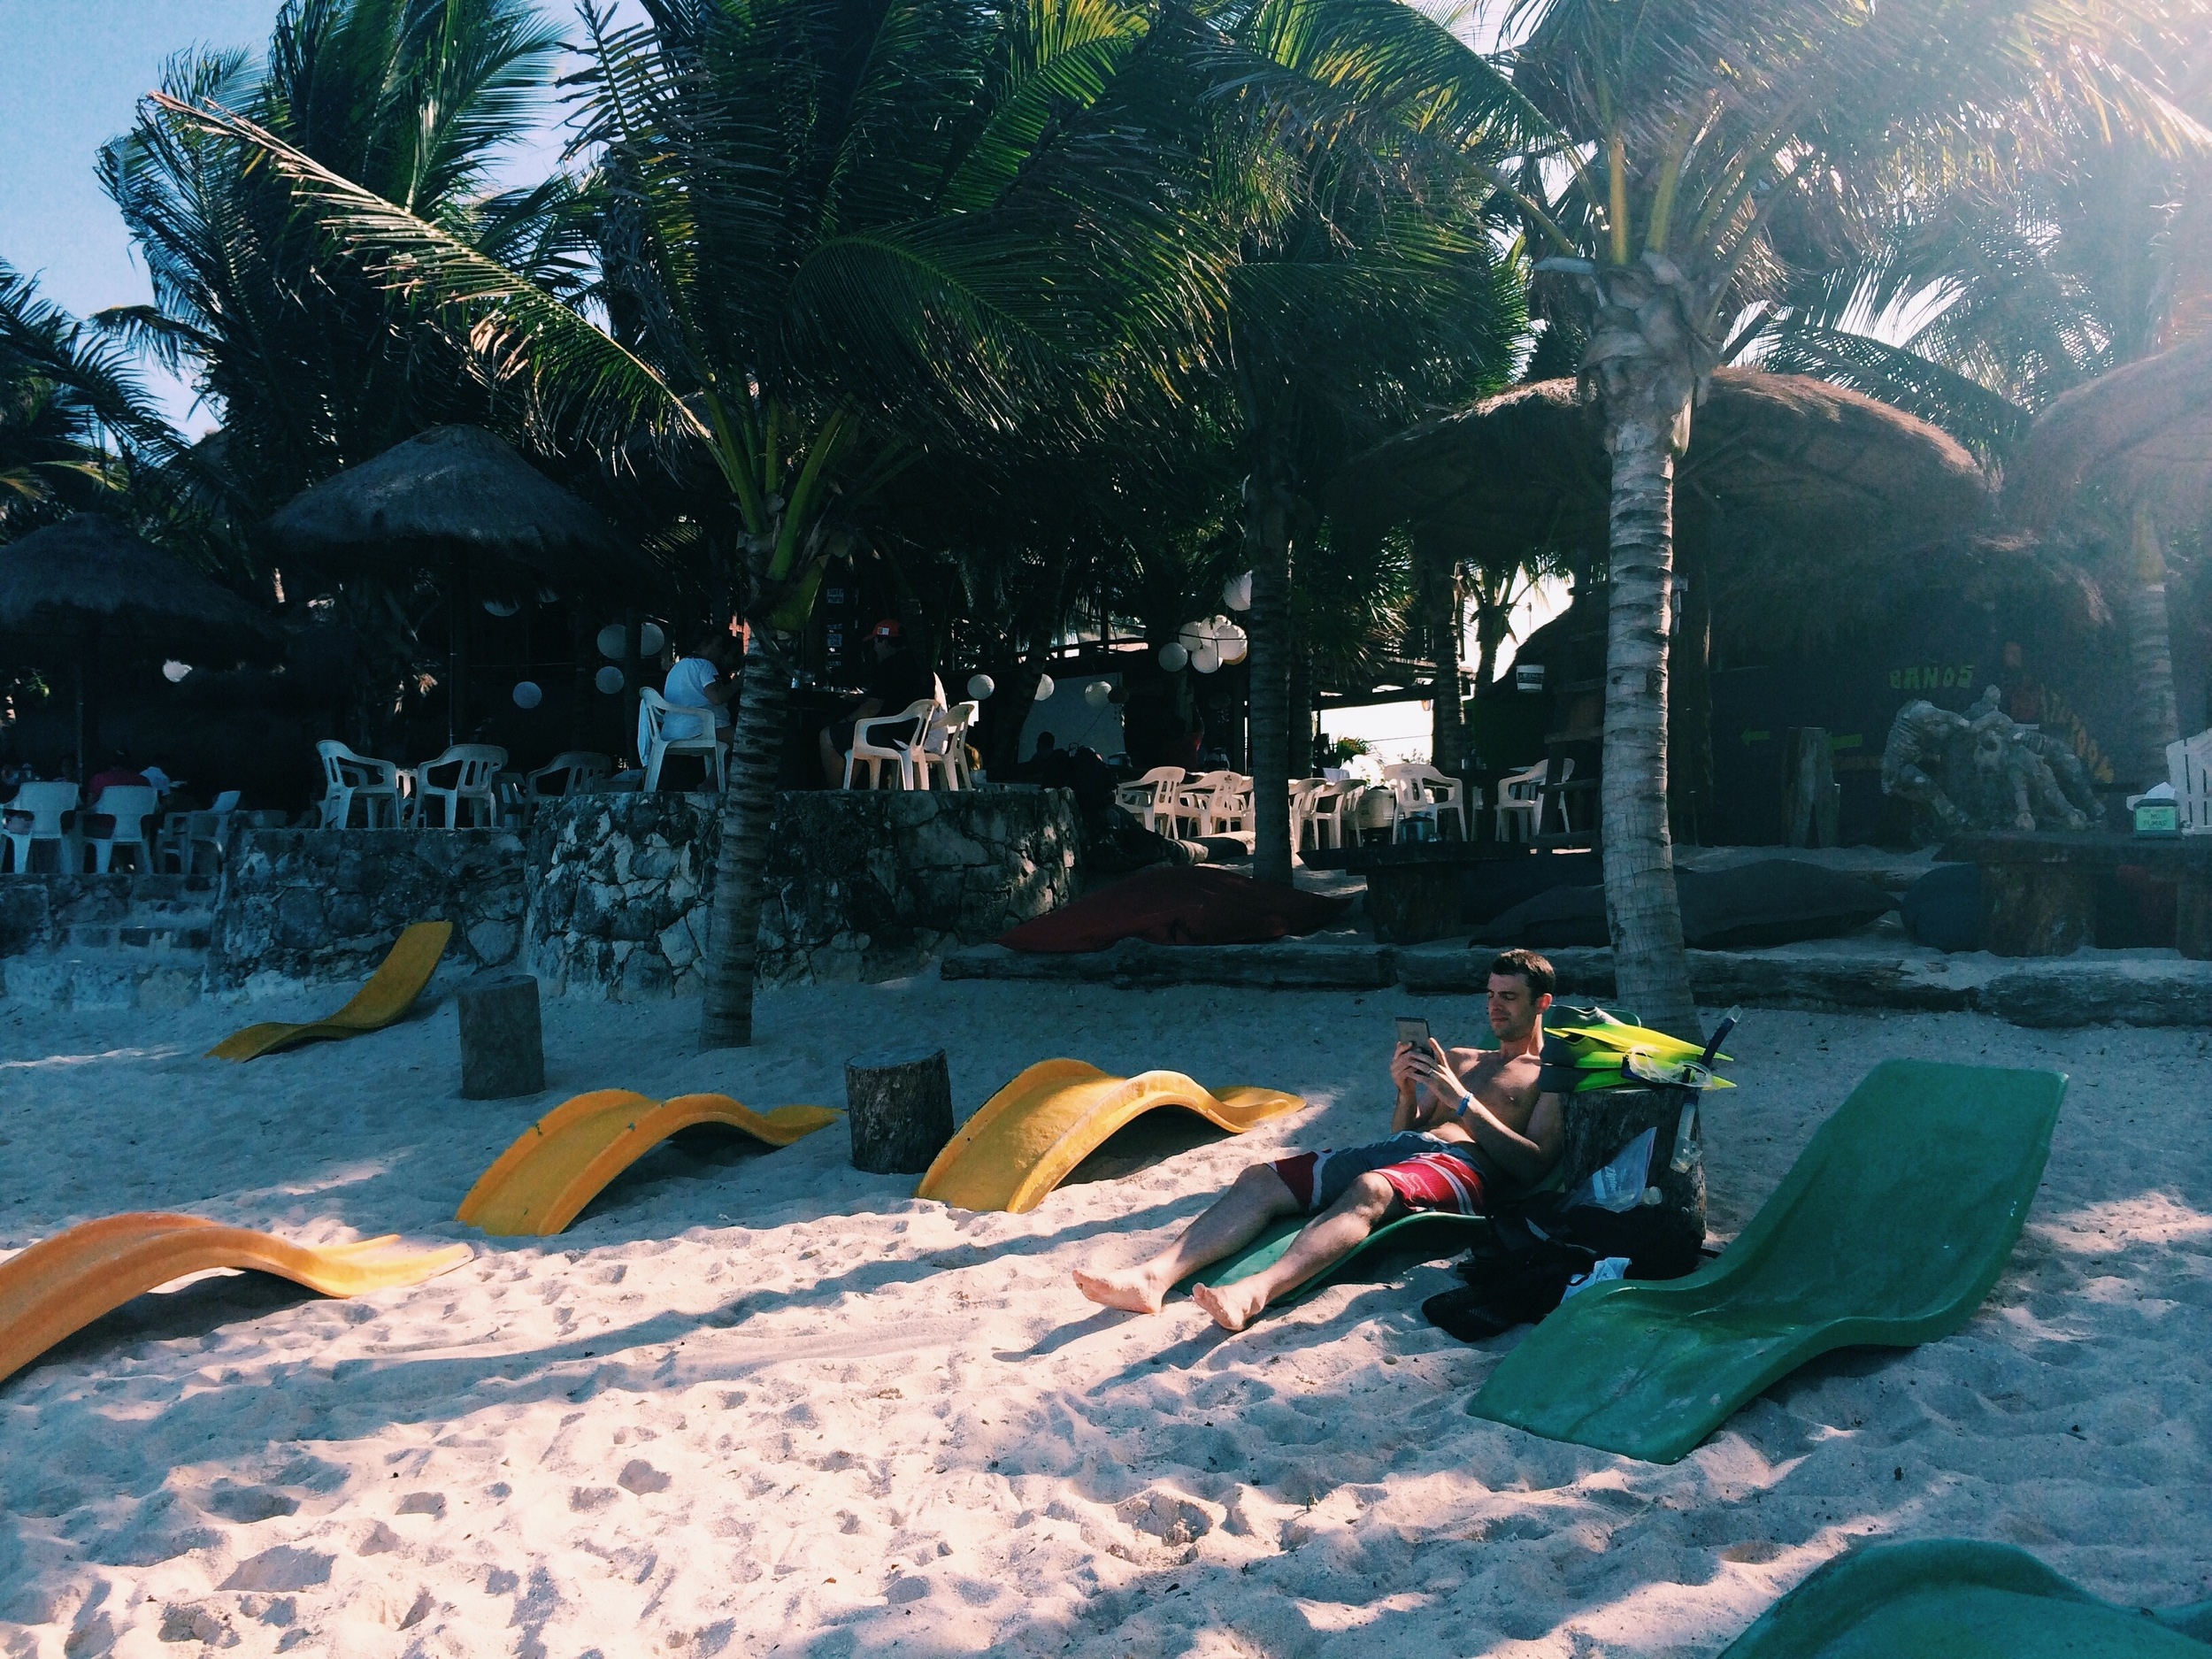 After you eat, take a break before you get in the water to snorkel.